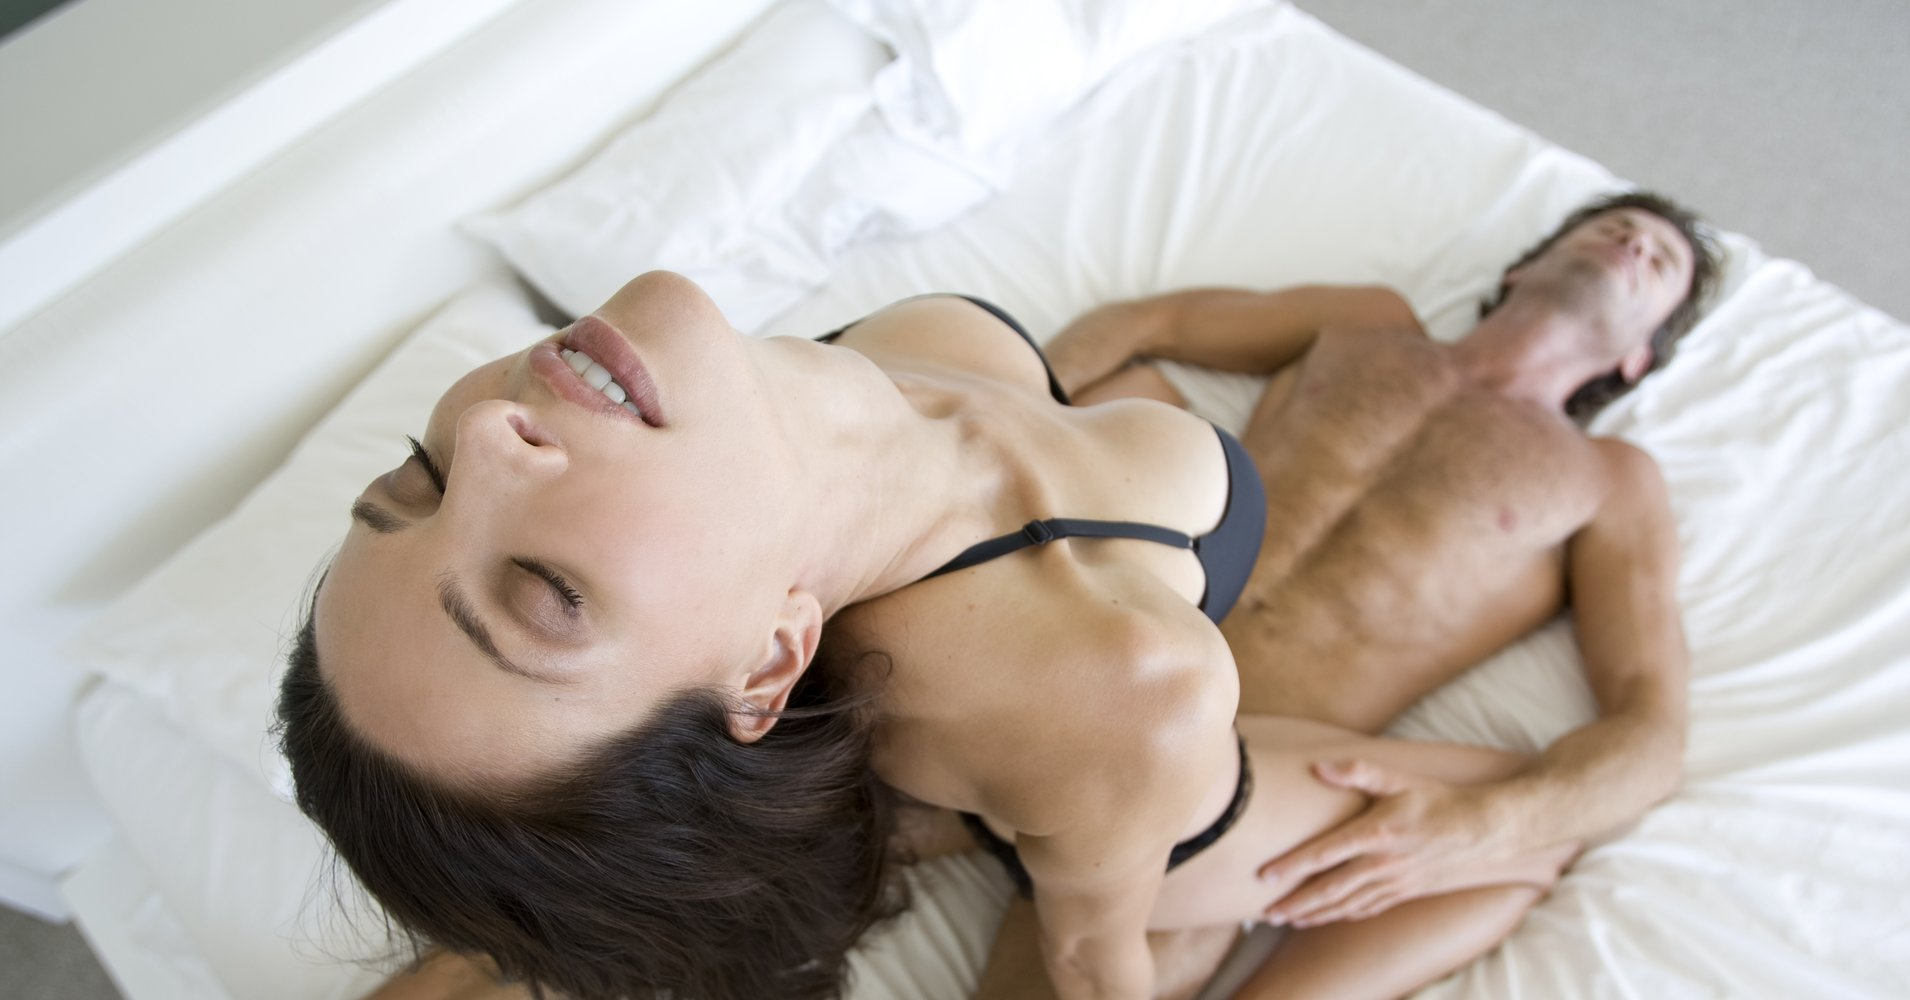 Women fucking guide to the female orgasm position hindi